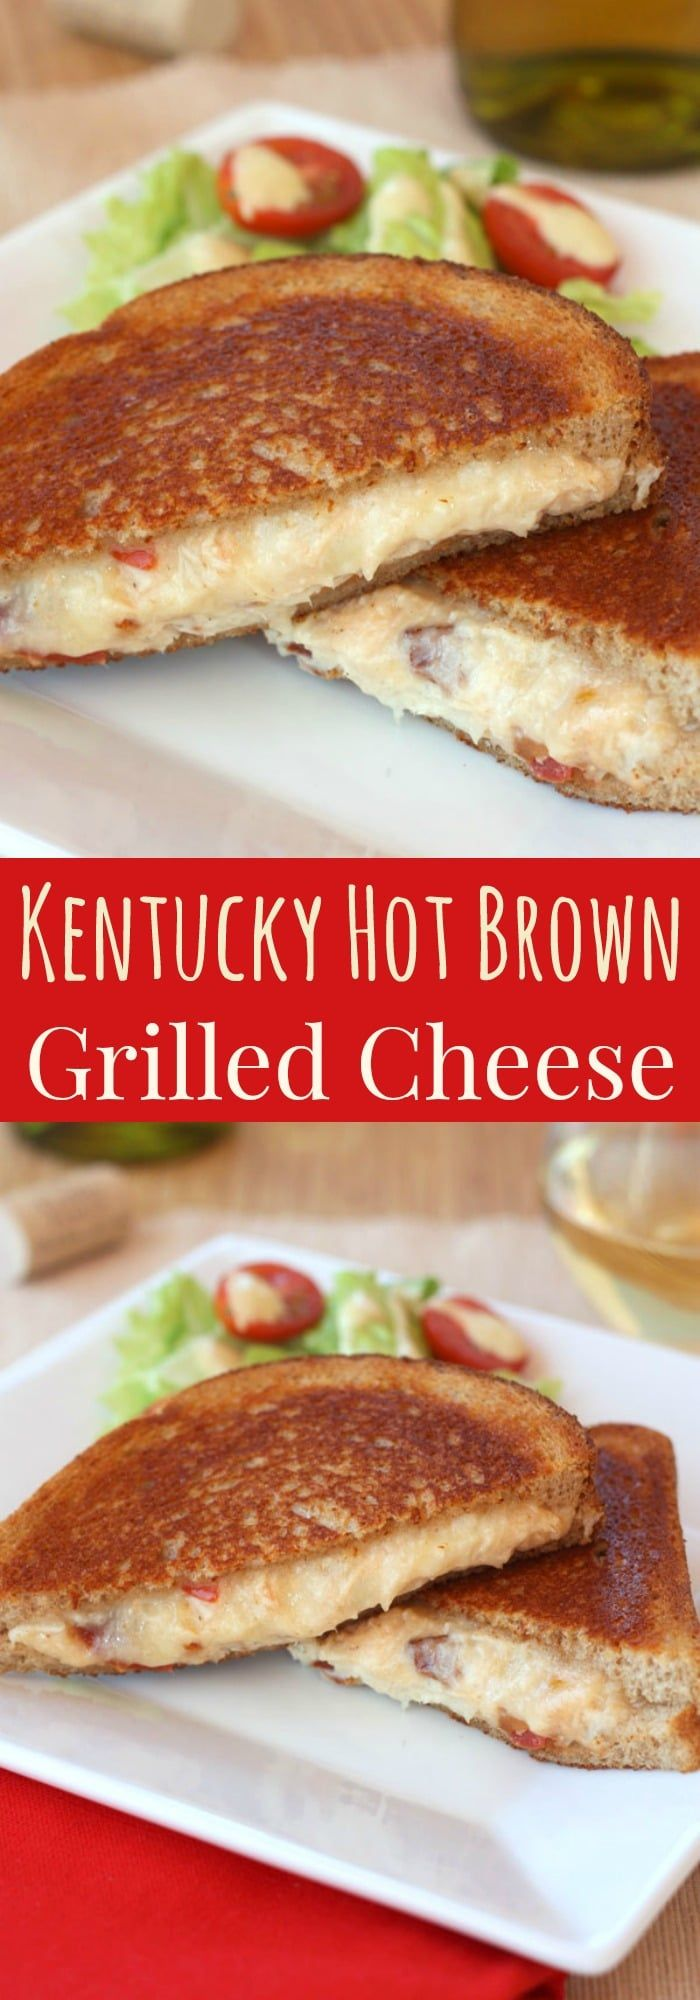 Kentucky Hot Brown Grilled Cheese Sandwich - the Bluegrass State classic filled with turkey and bacon combined with your favorite comfort food in one cheesy sandwich.   cupcakesandkalechips.com